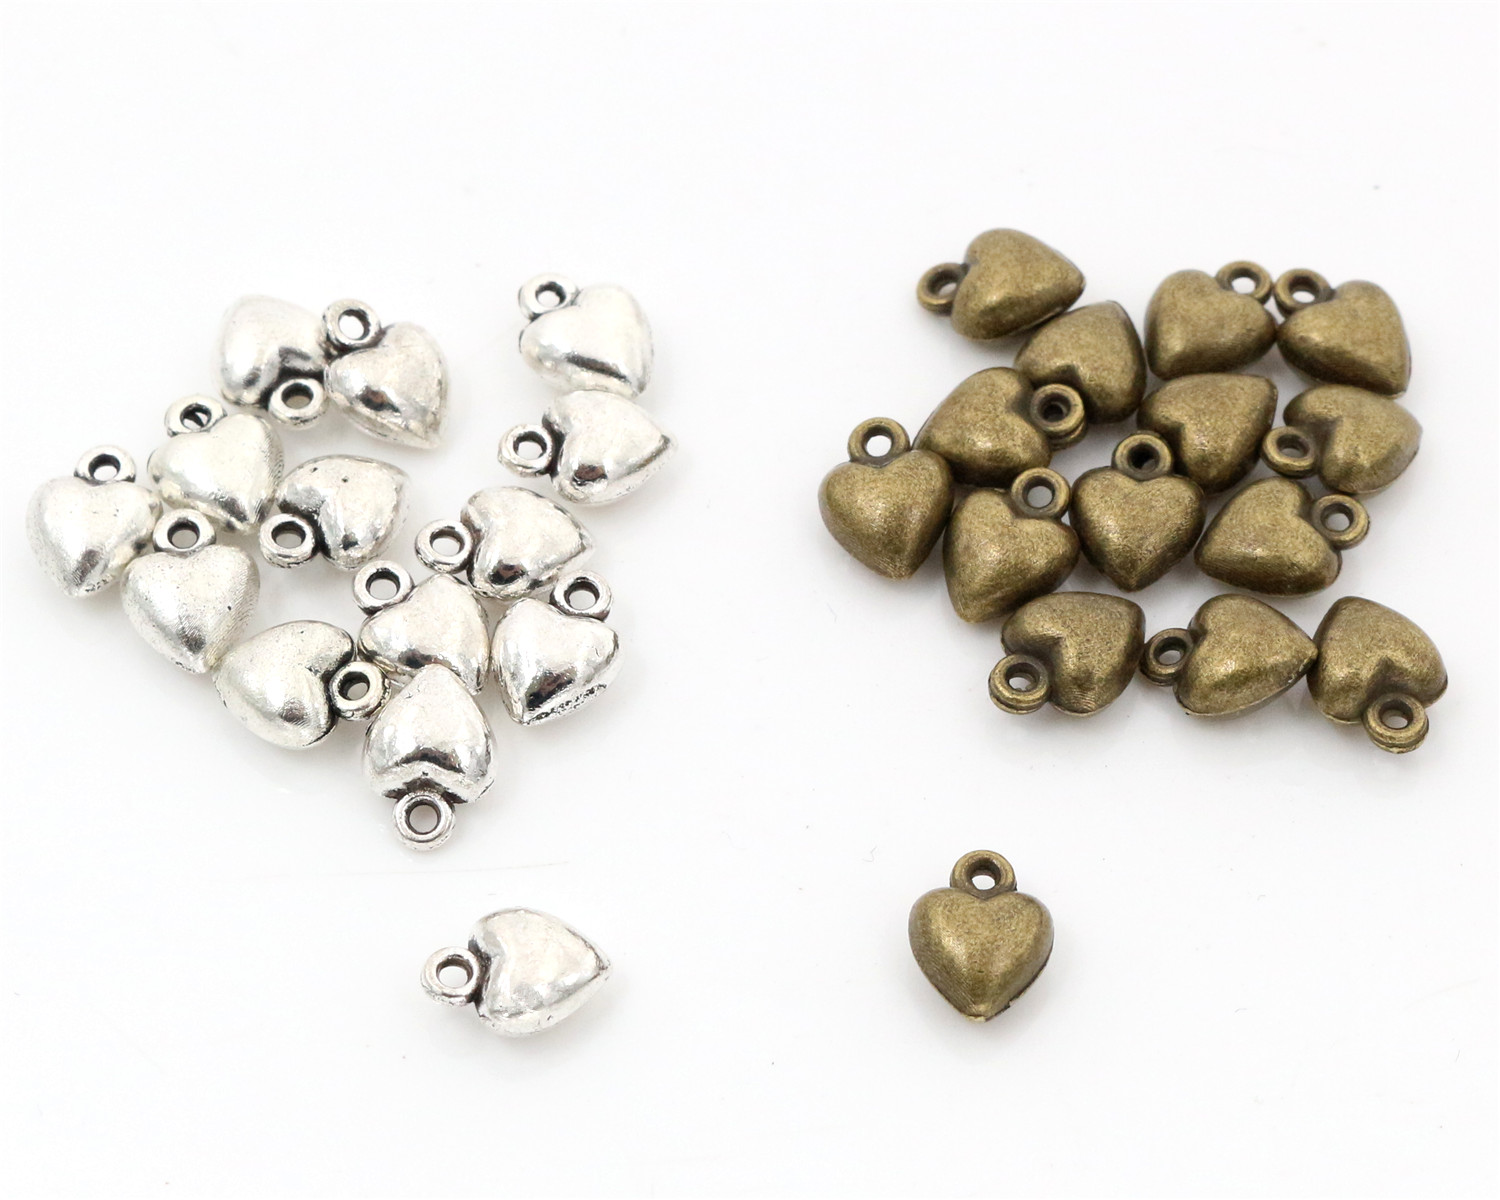 9x7mm 30pcs Antique Silver And Bronze Plated Heart Handmade Charms Pendant:DIY For Bracelet Necklace-